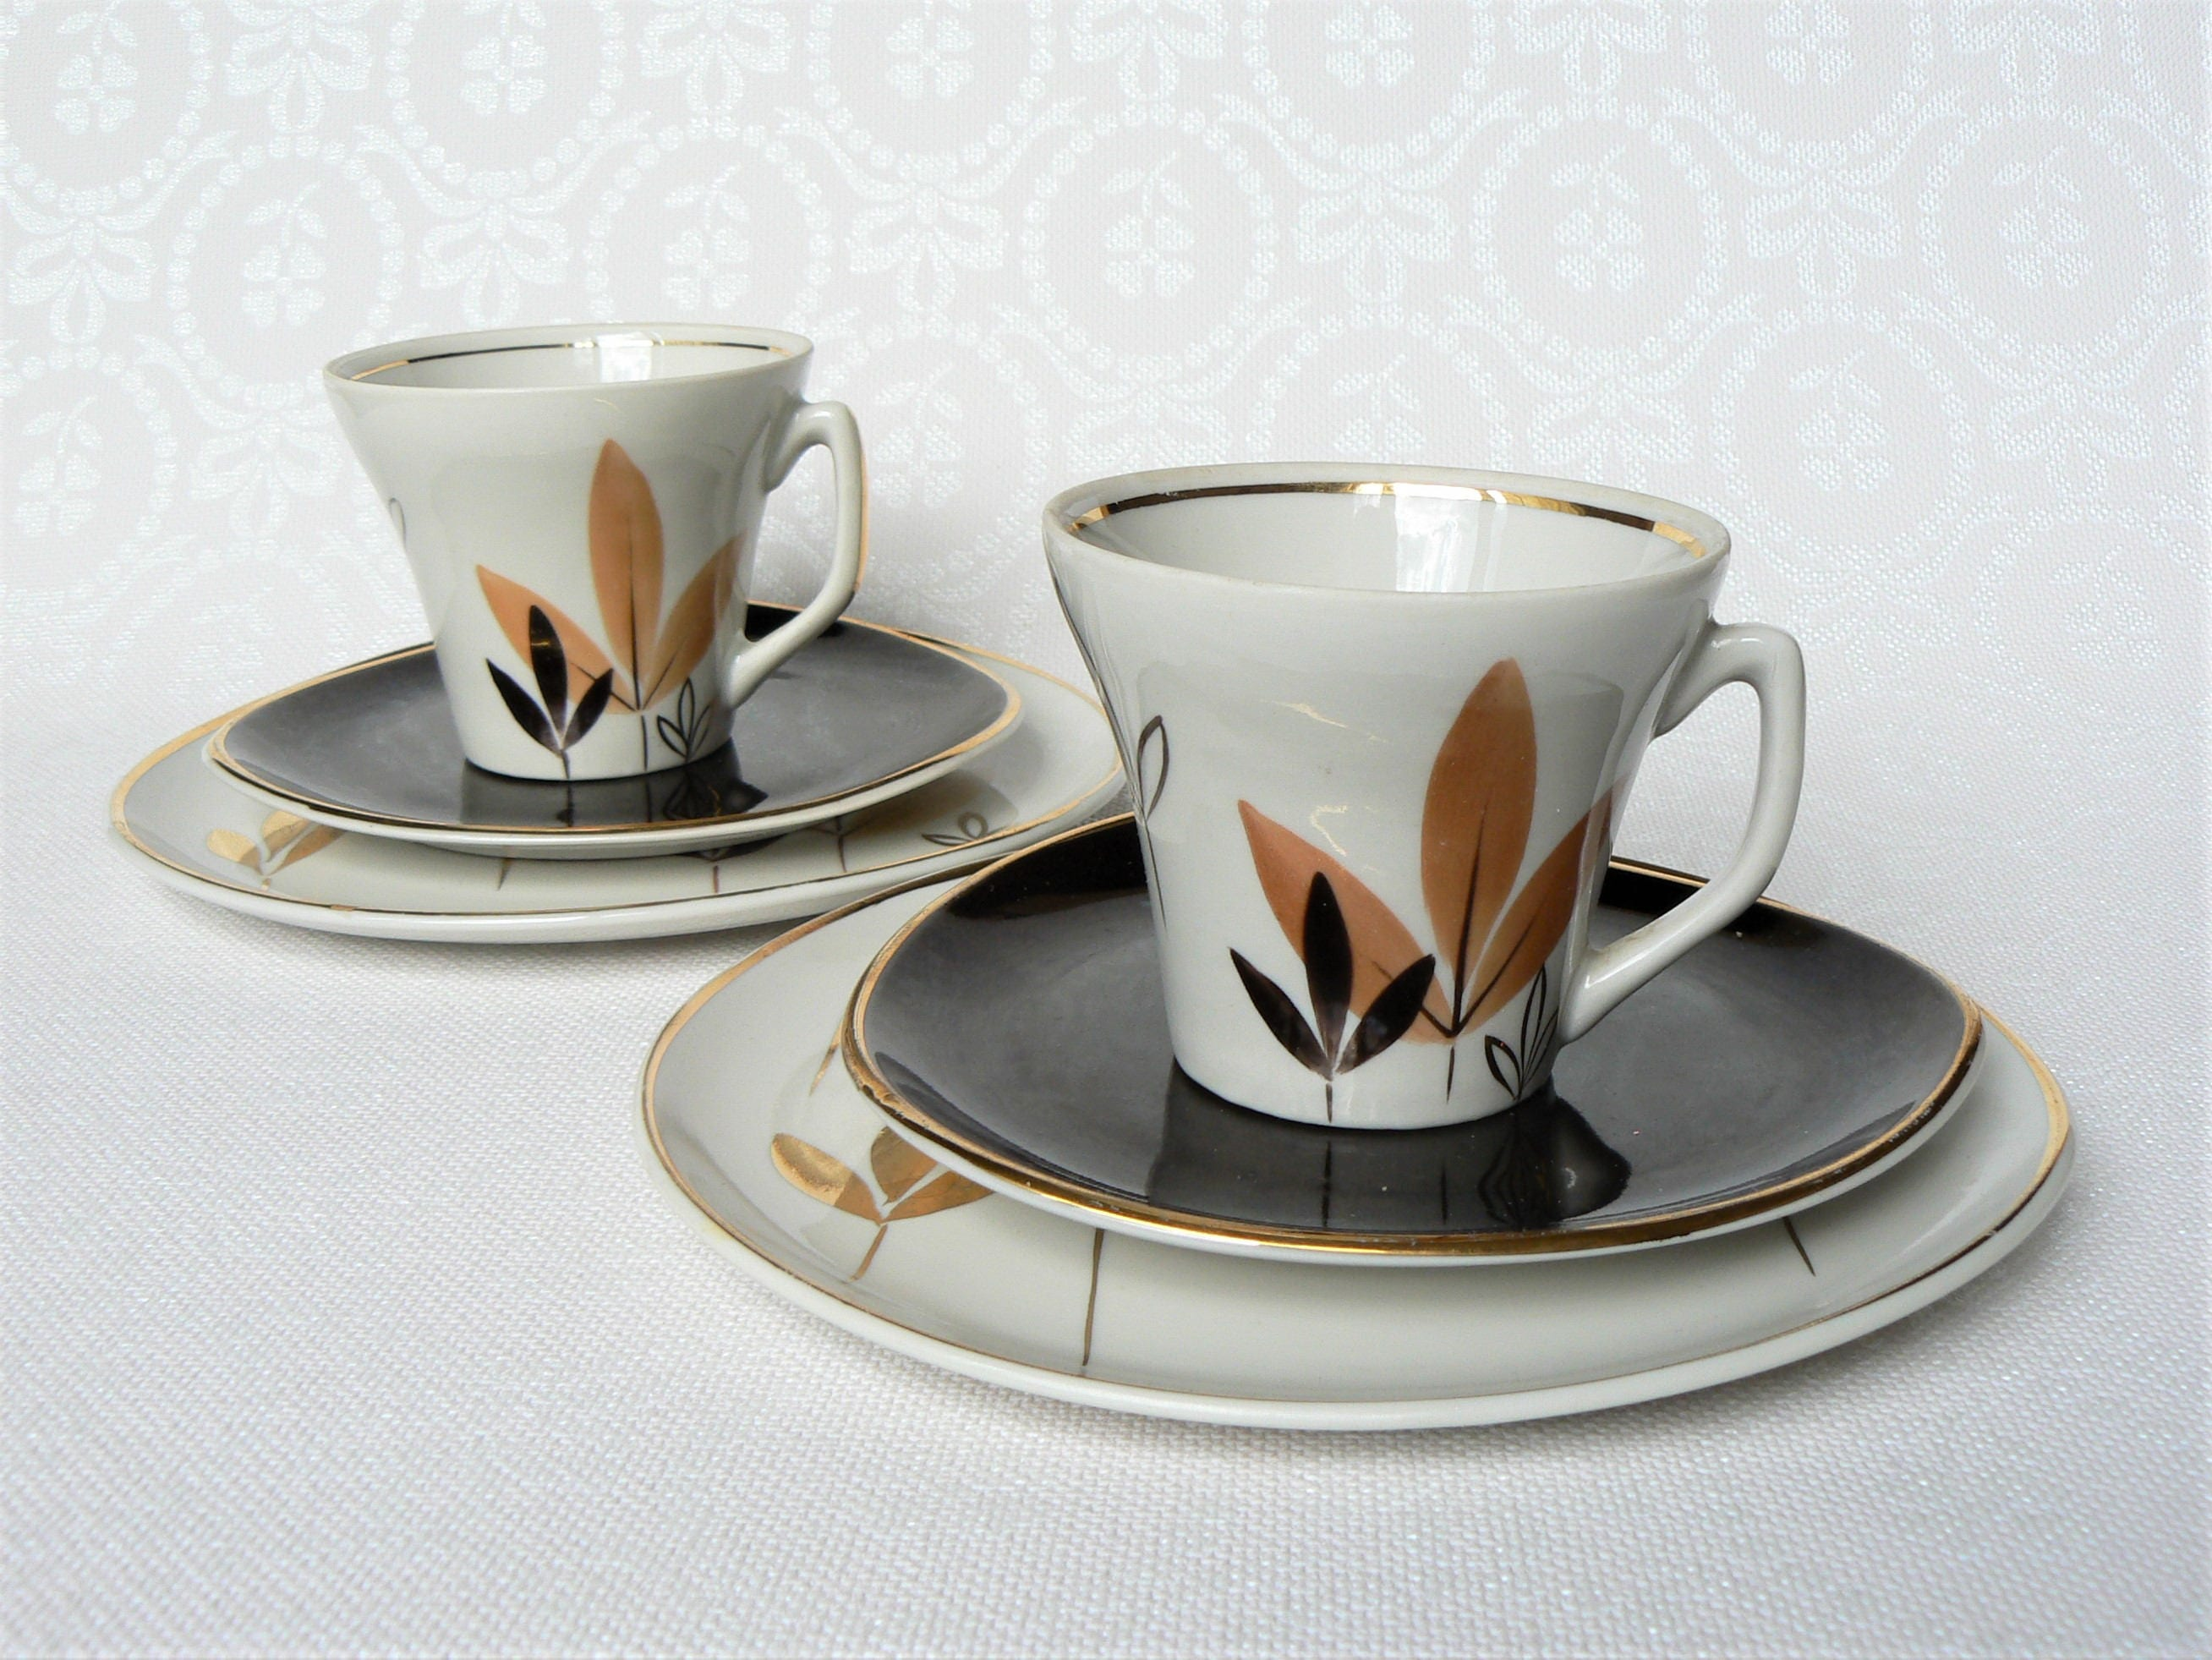 COFFEE Set Latvian Vintage/ Porcelain Coffee Cup Saucer u0026 Dessert Plate/ Handpainted Leaves & COFFEE Set Latvian Vintage/ Porcelain Coffee Cup Saucer u0026 Dessert ...